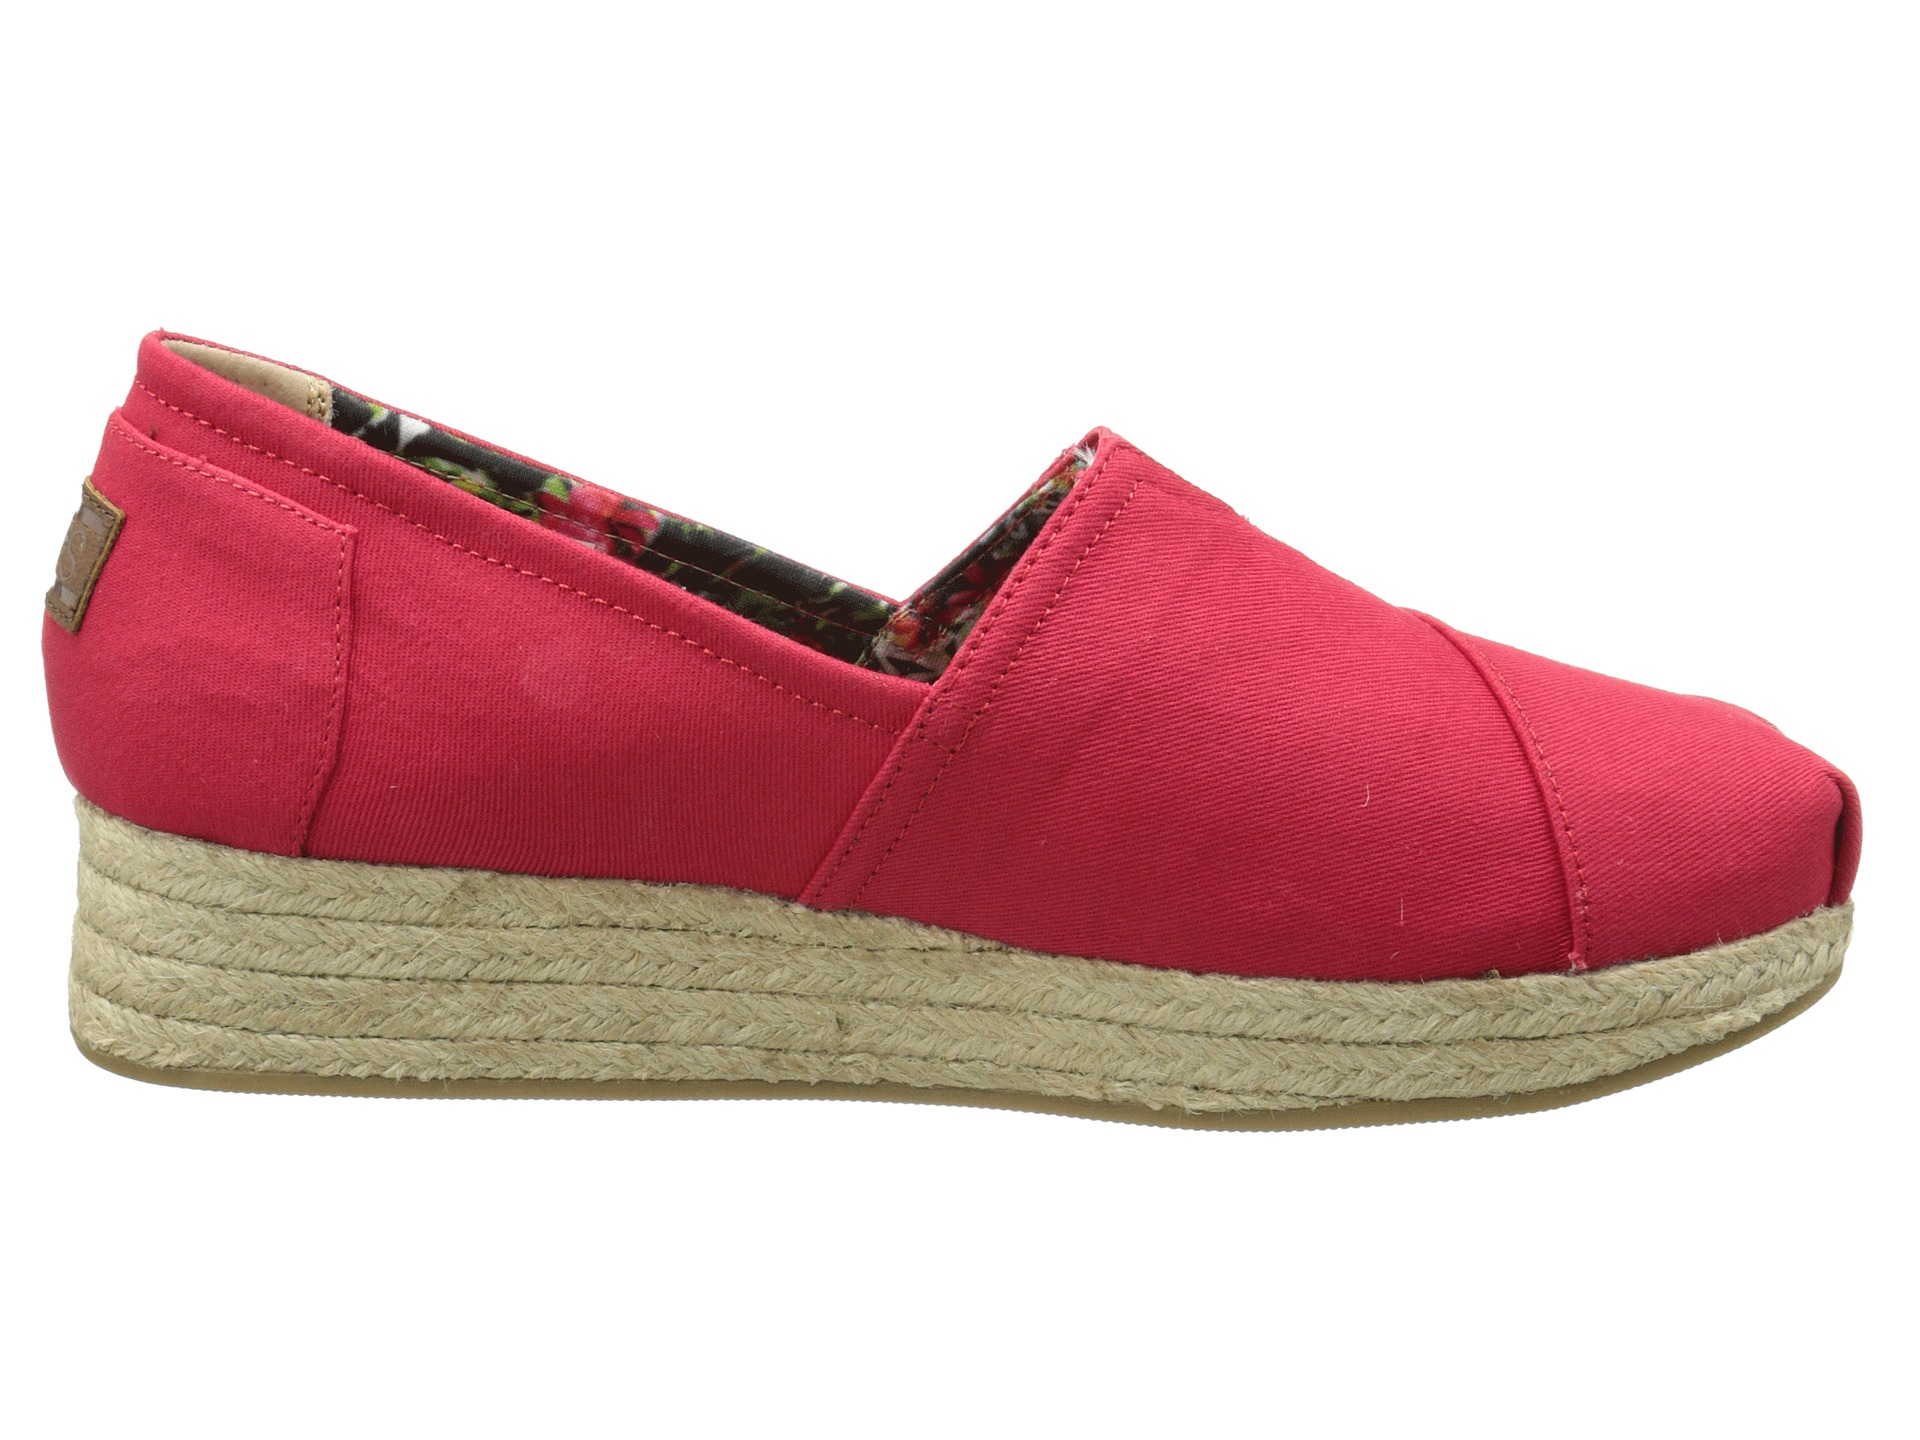 BOBS From SKECHERS Wedge Espadrille Memory Foam Red - Zappos.com Free Shipping BOTH Ways